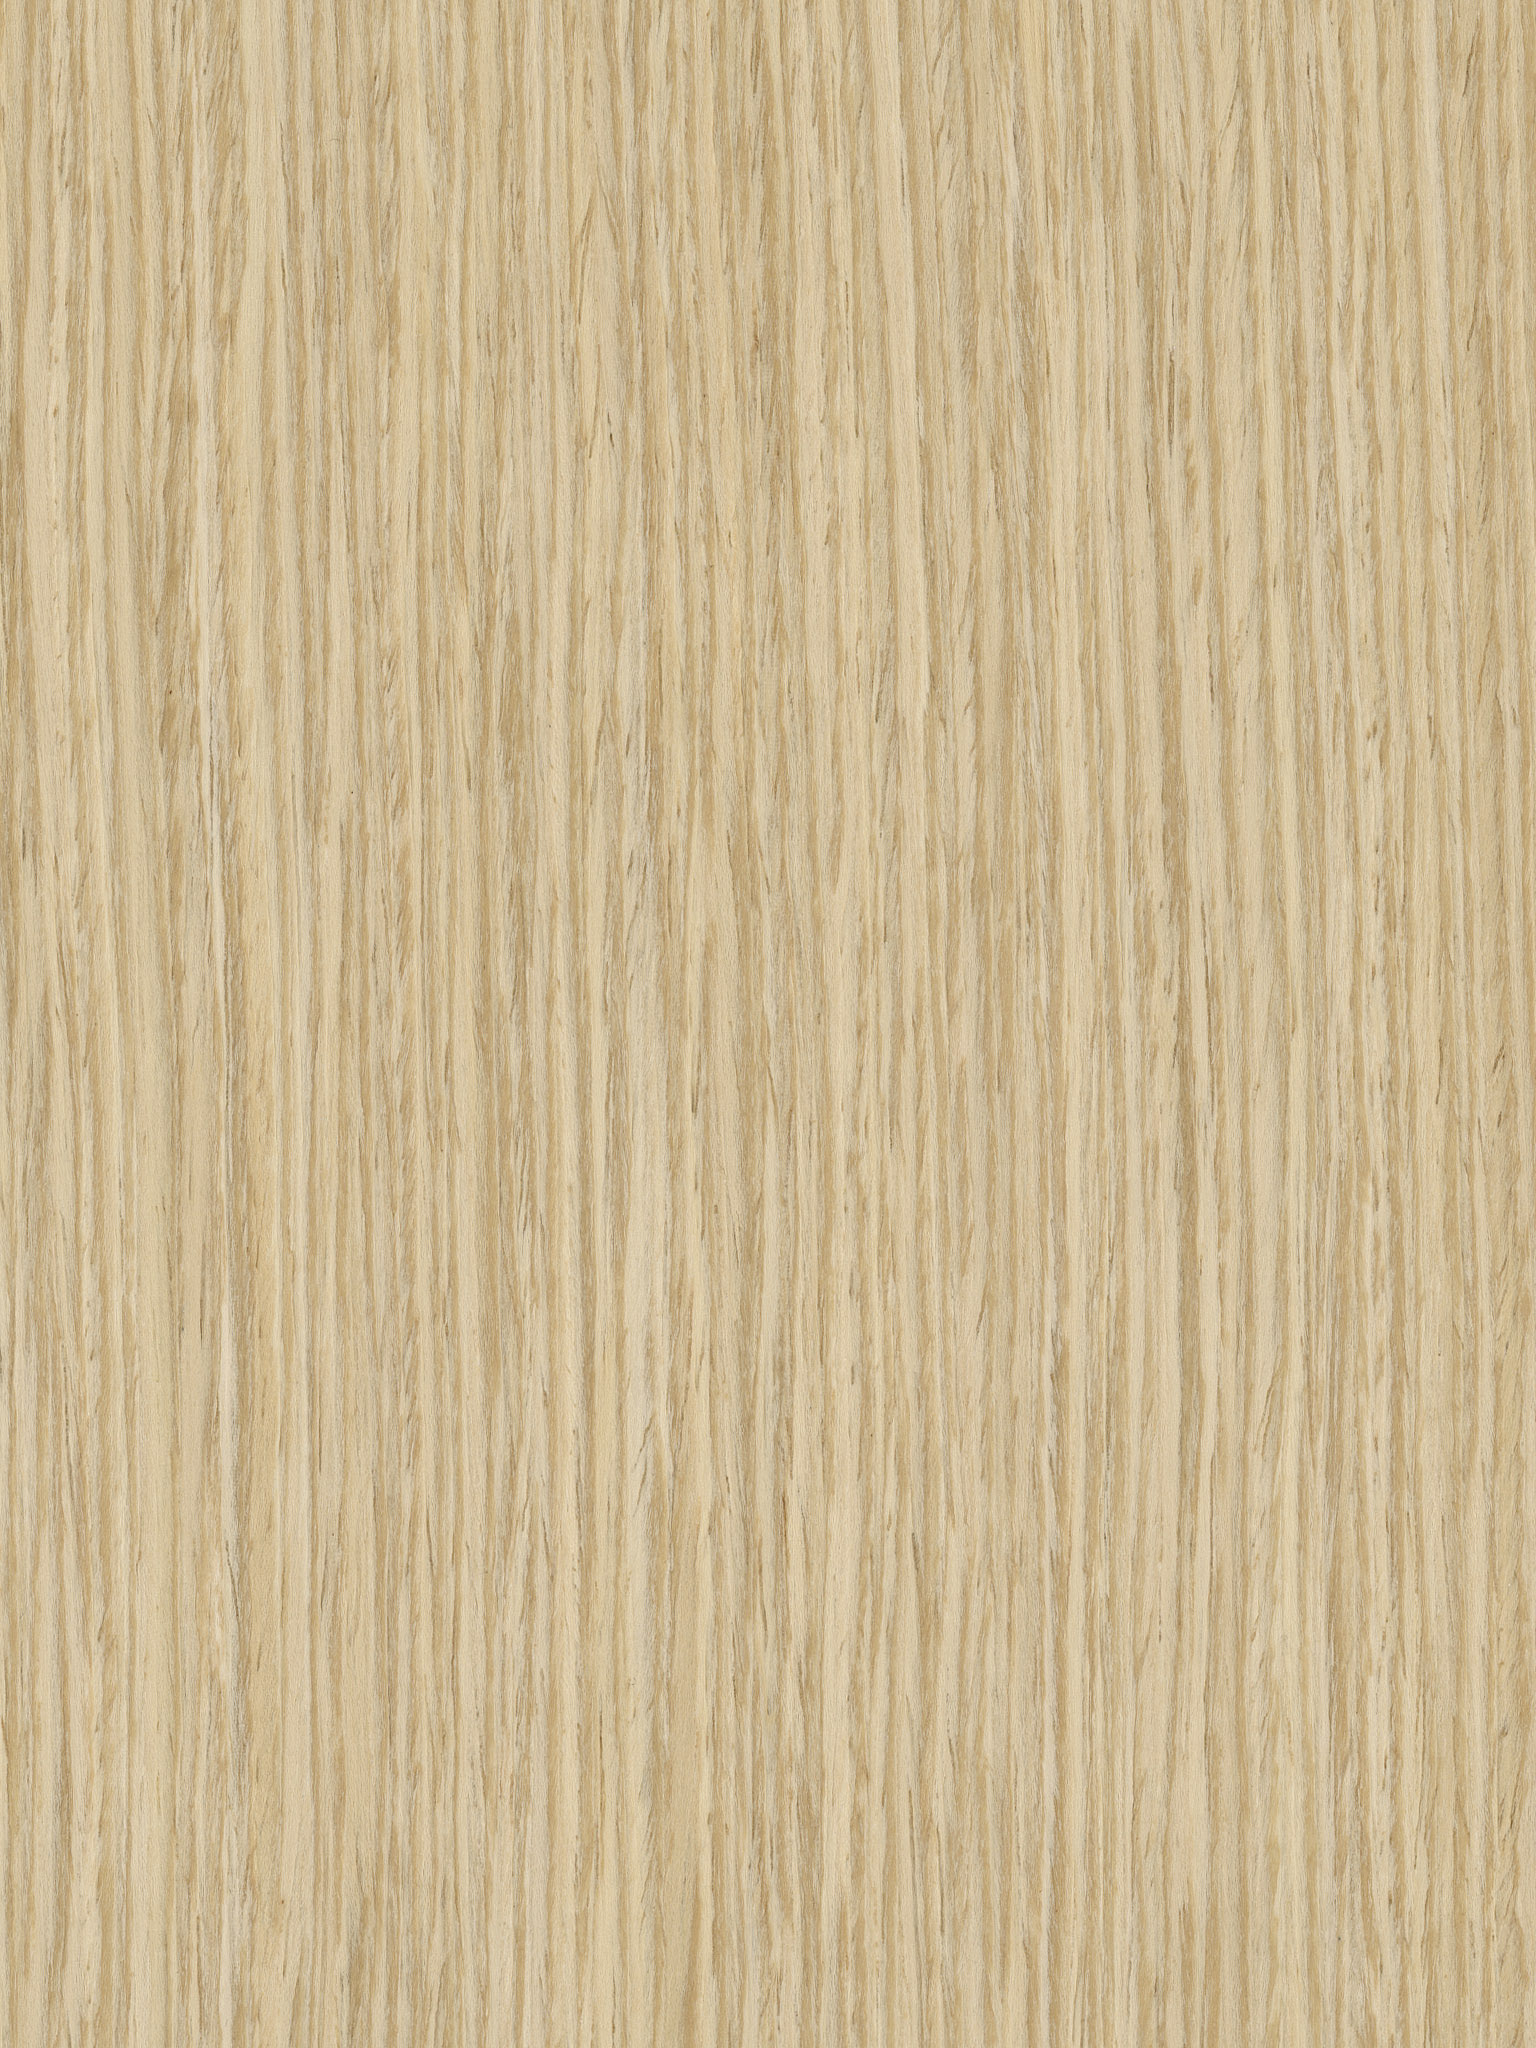 Light oak wood texture driverlayer search engine for Texture rovere